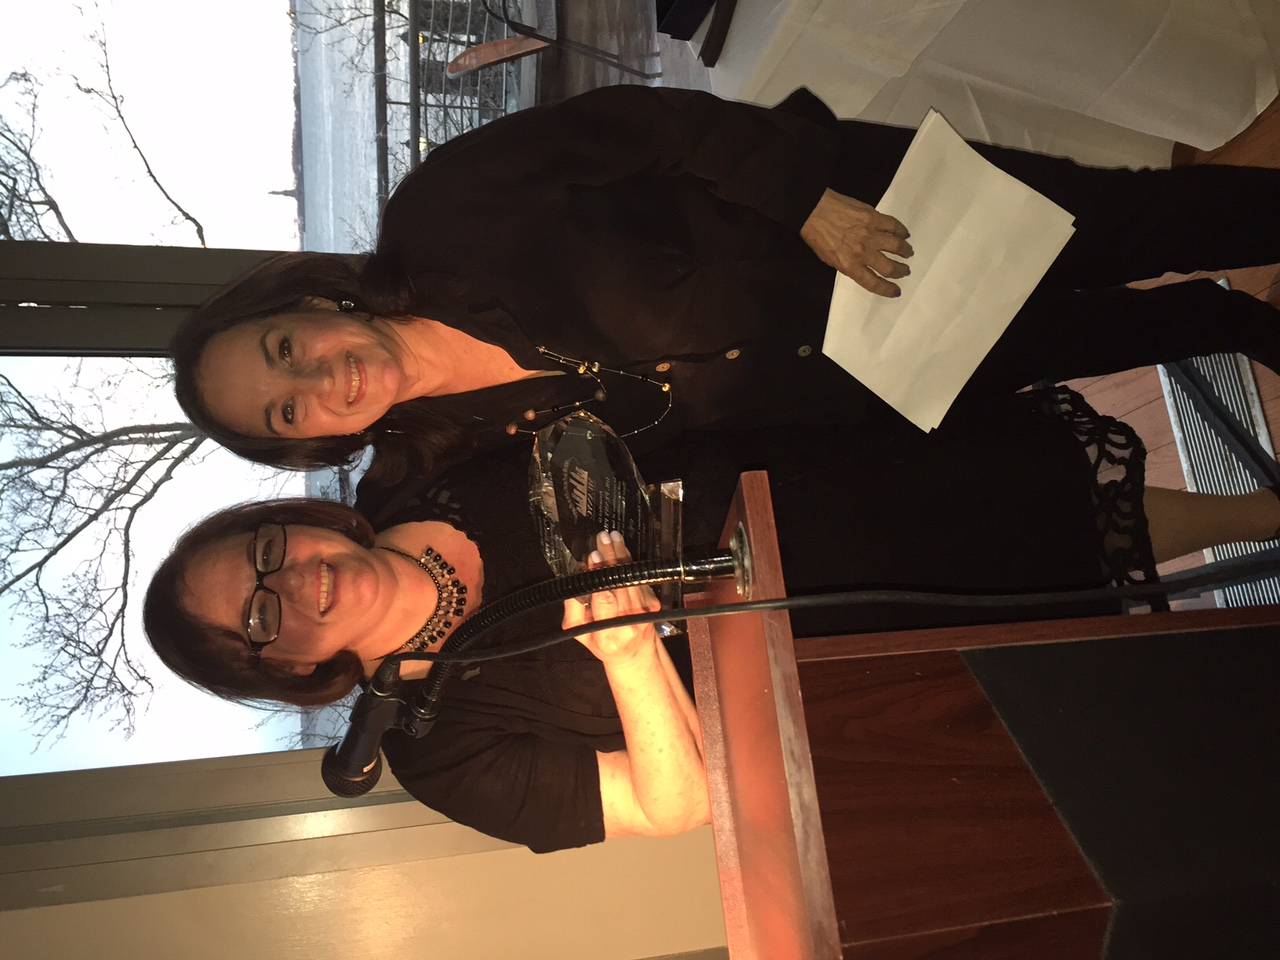 Honoree Dr. Penny Prince was introduced by MEANYC member Linda LoPresti